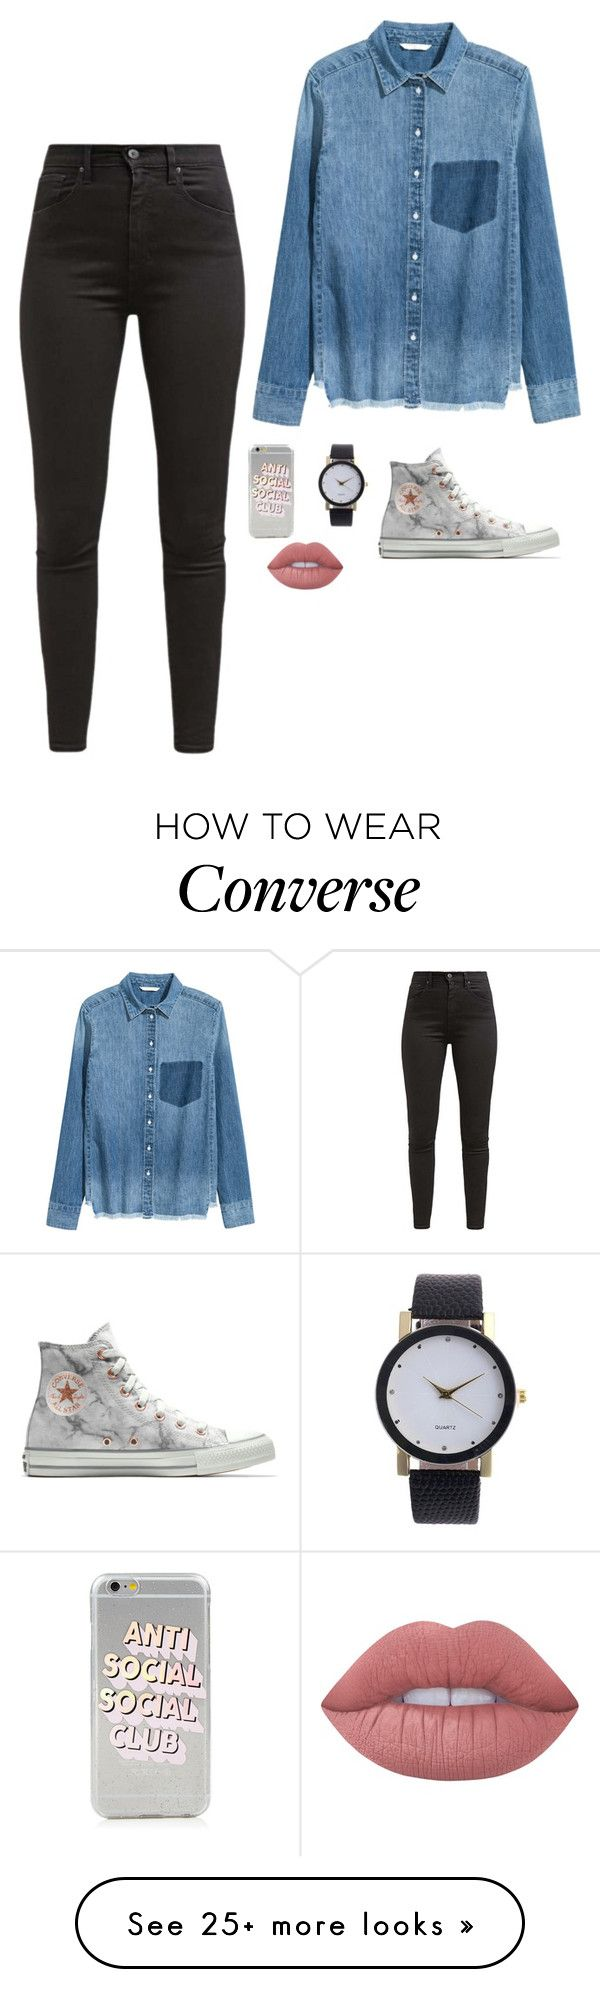 """Untitled #4127"" by if-i-were-famous1 on Polyvore featuring Levi's, Converse and Lime Crime"